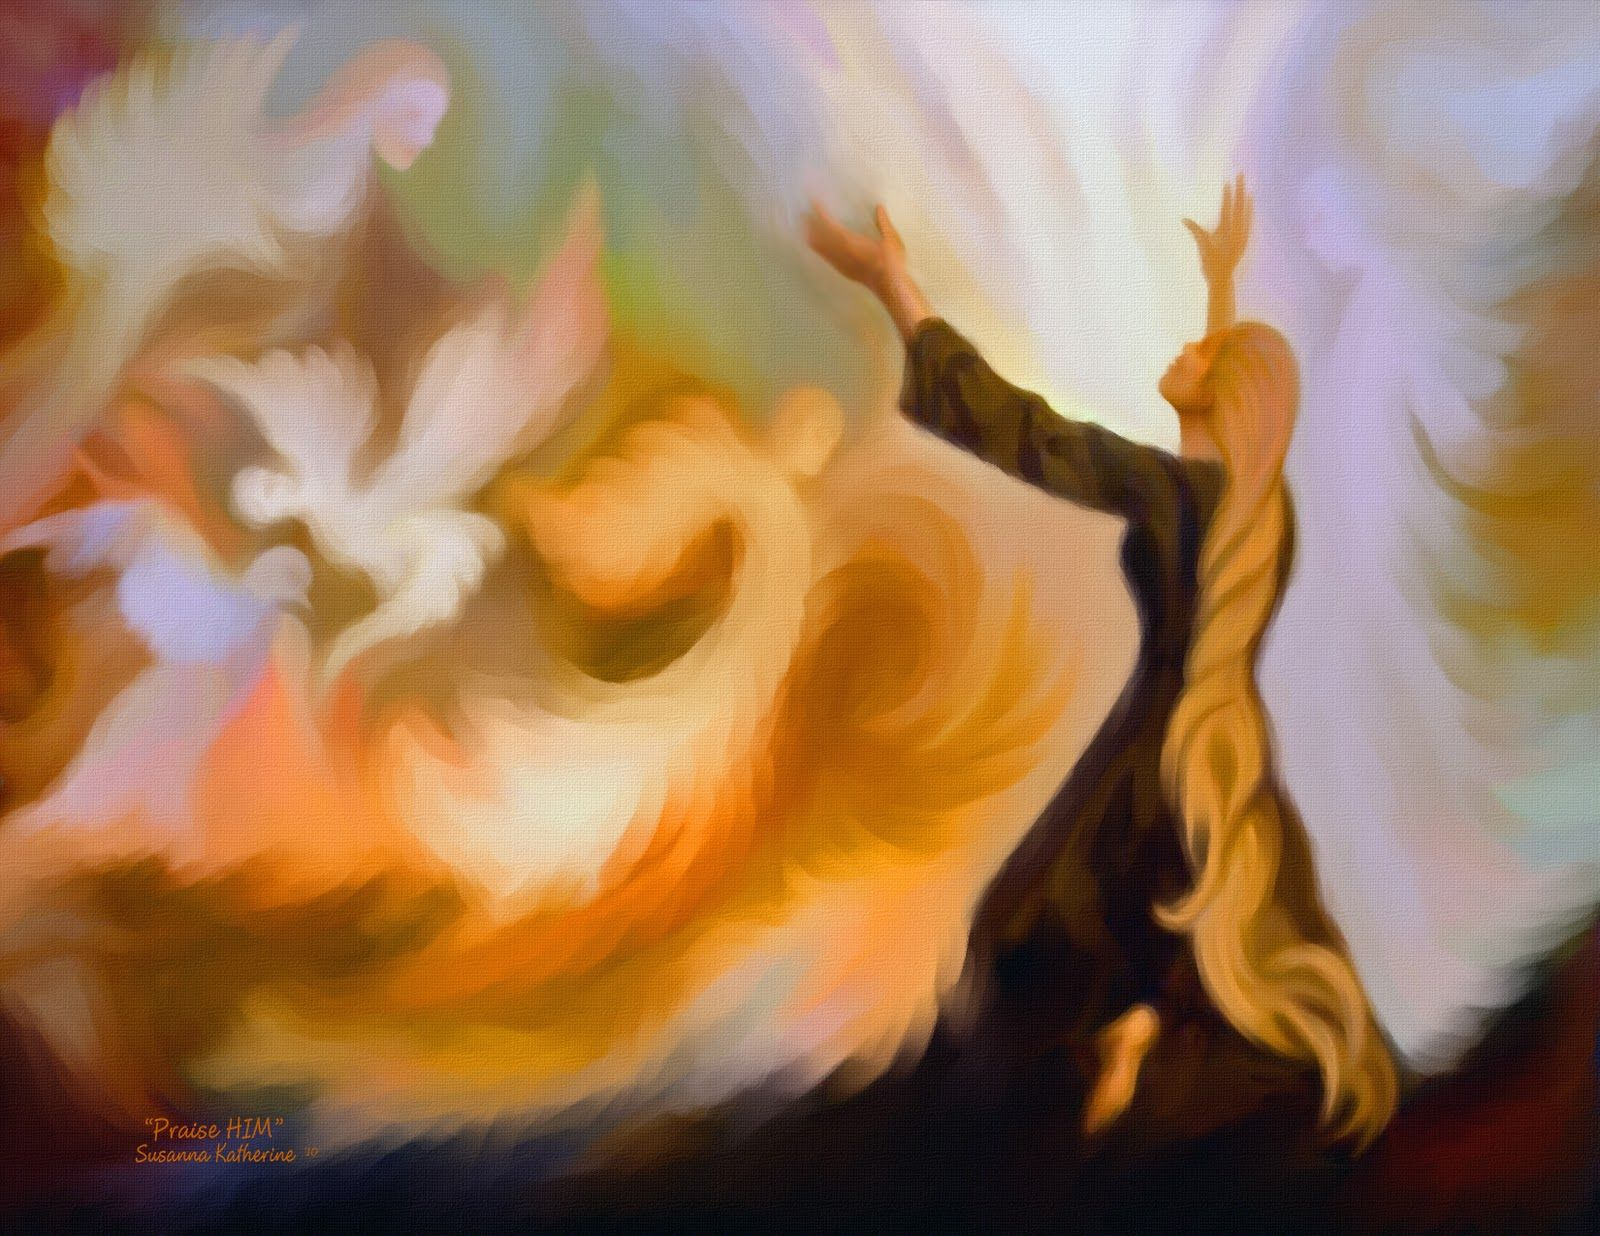 17 Best images about Religious images on Pinterest | The lord ...